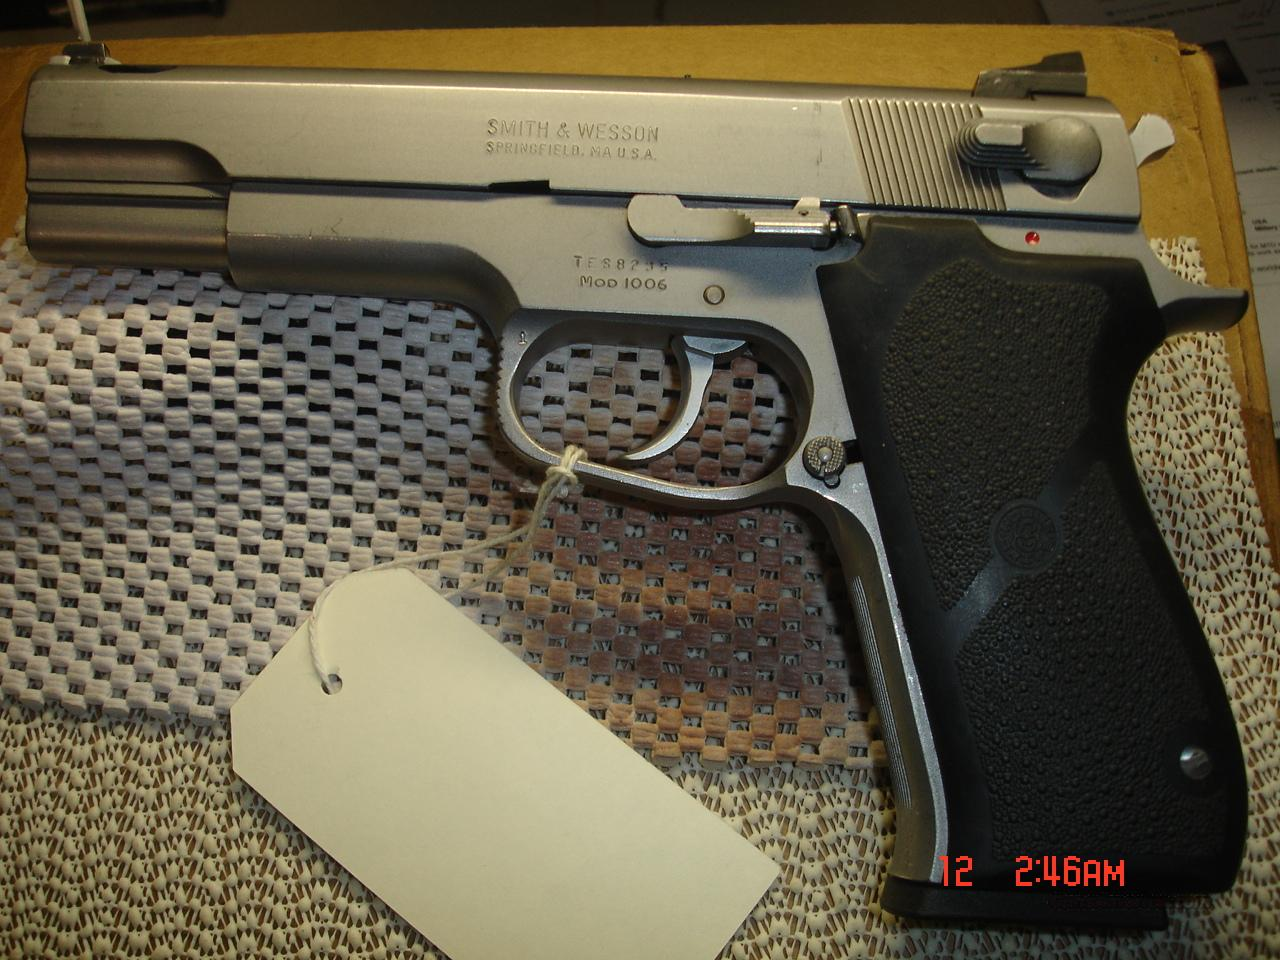 S&W MODEL 1006  Guns > Pistols > Smith & Wesson Pistols - Autos > Steel Frame